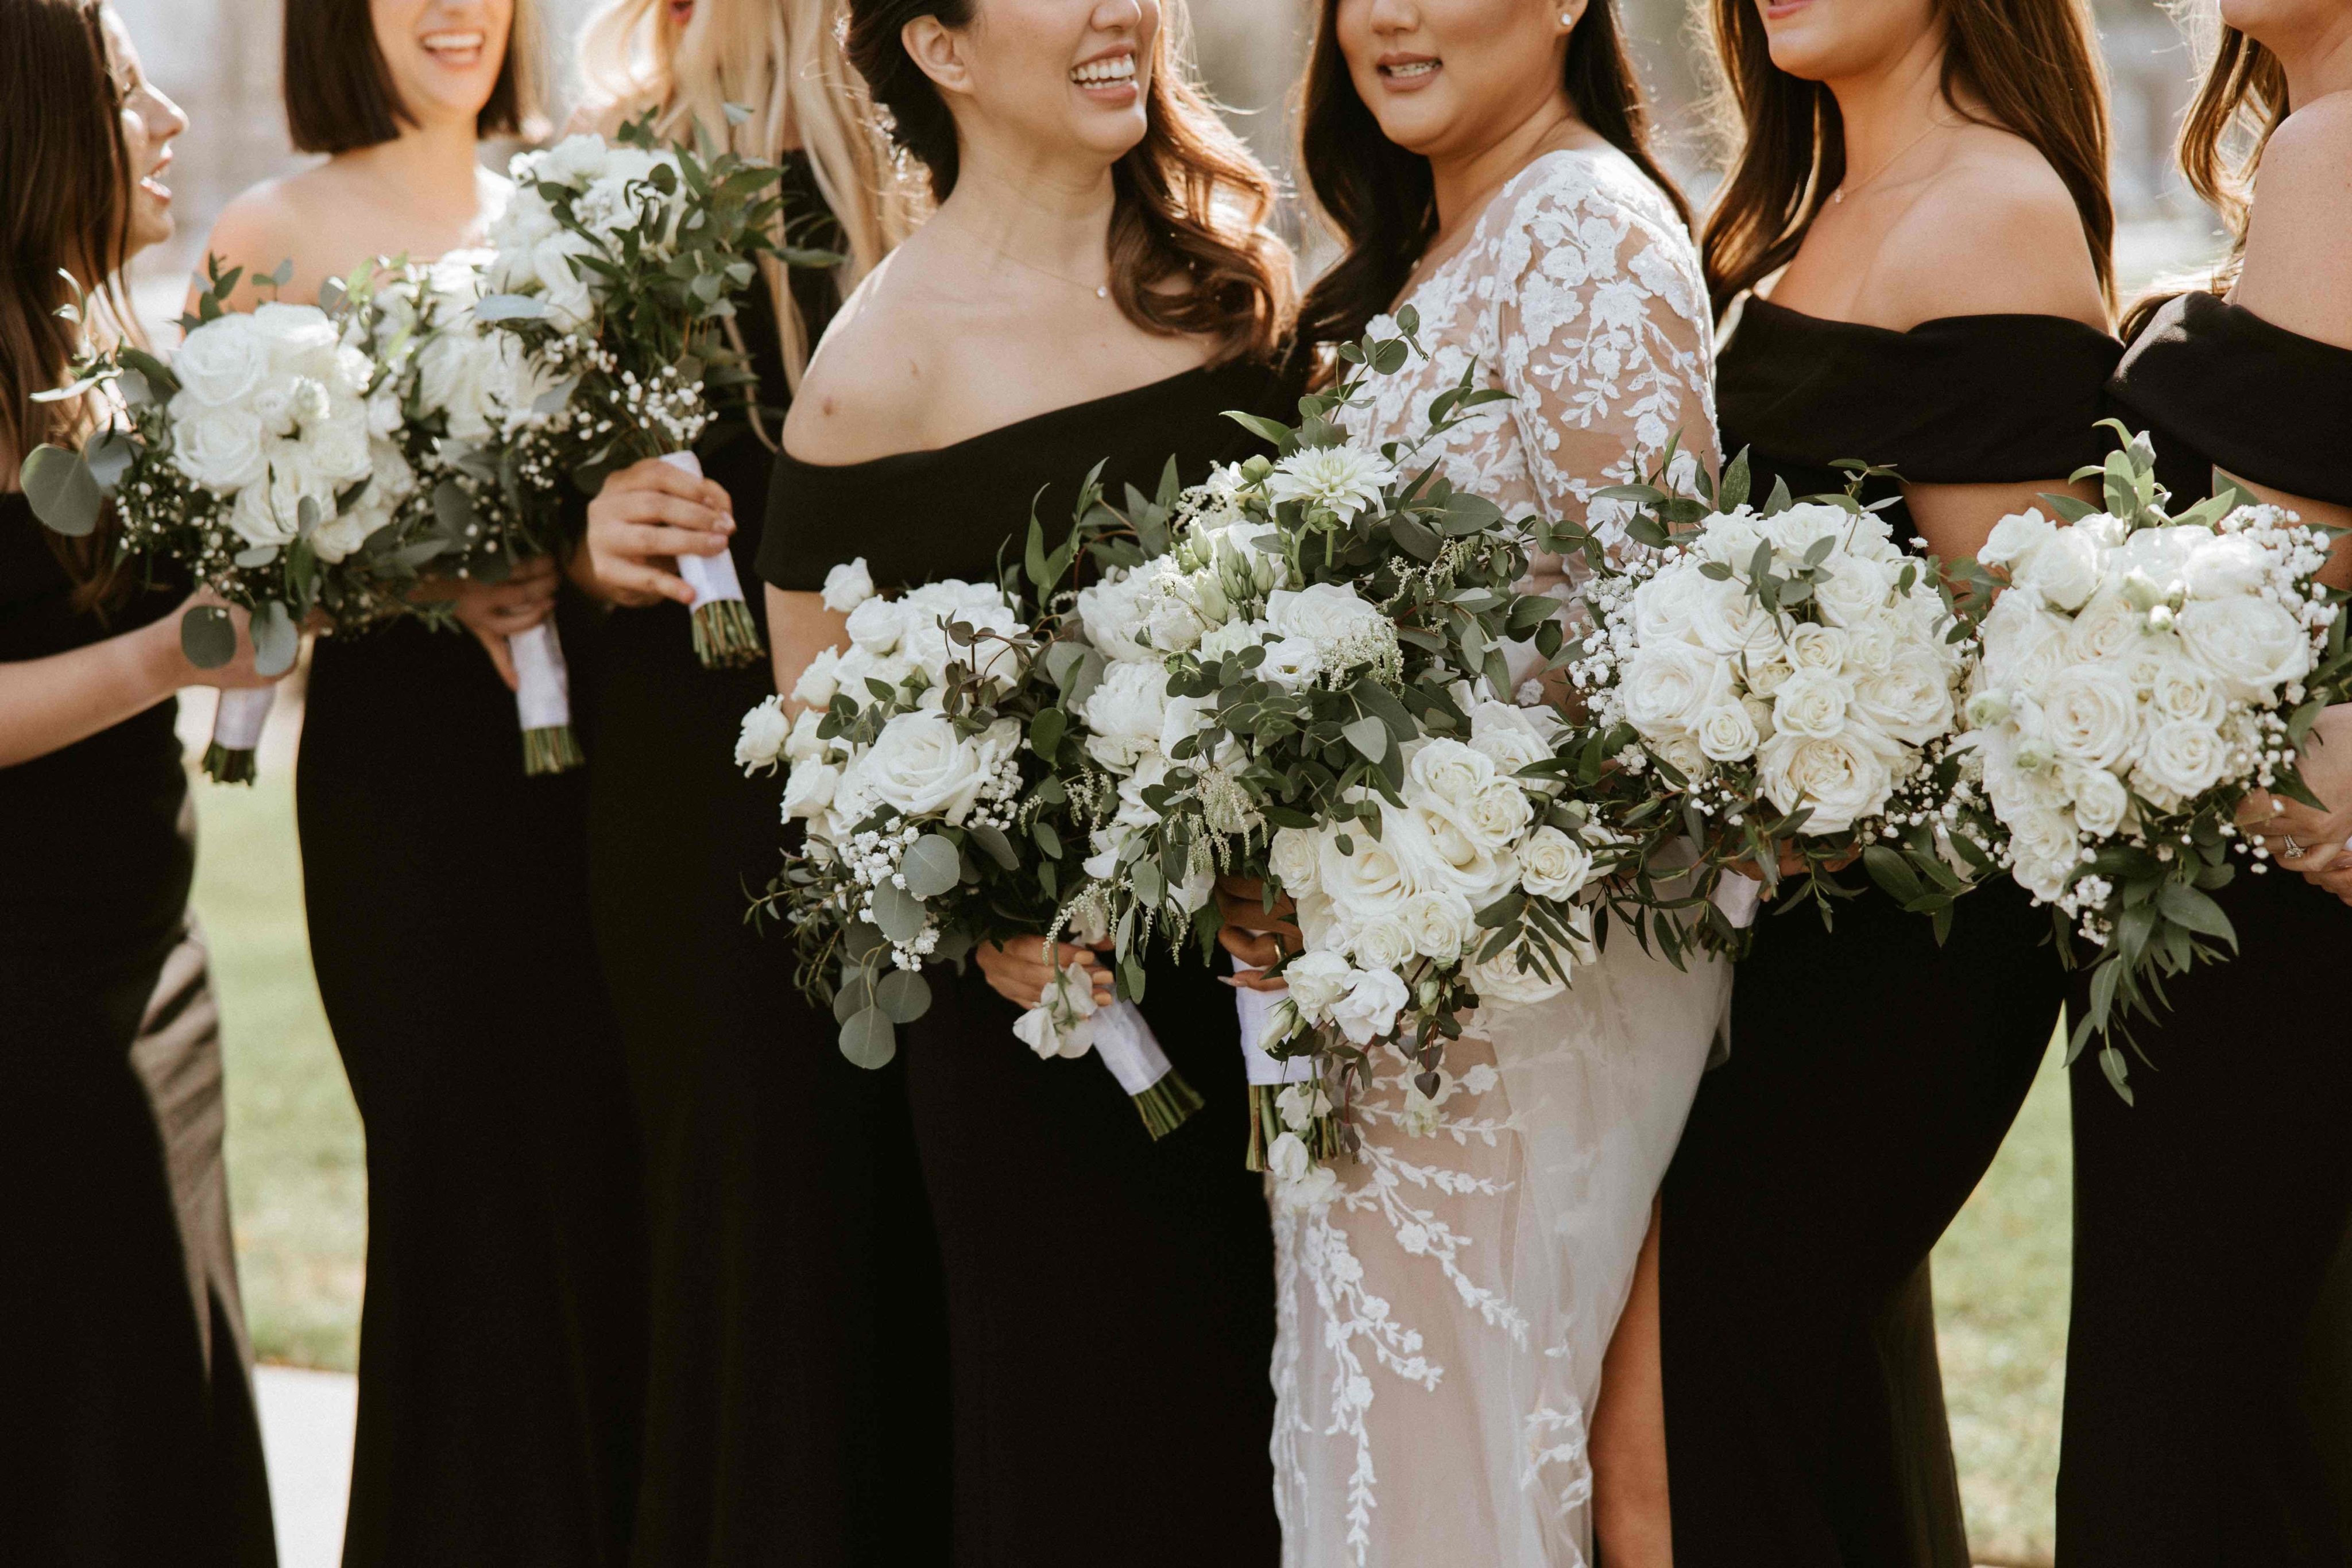 close up of bridal party dresses and bouquets